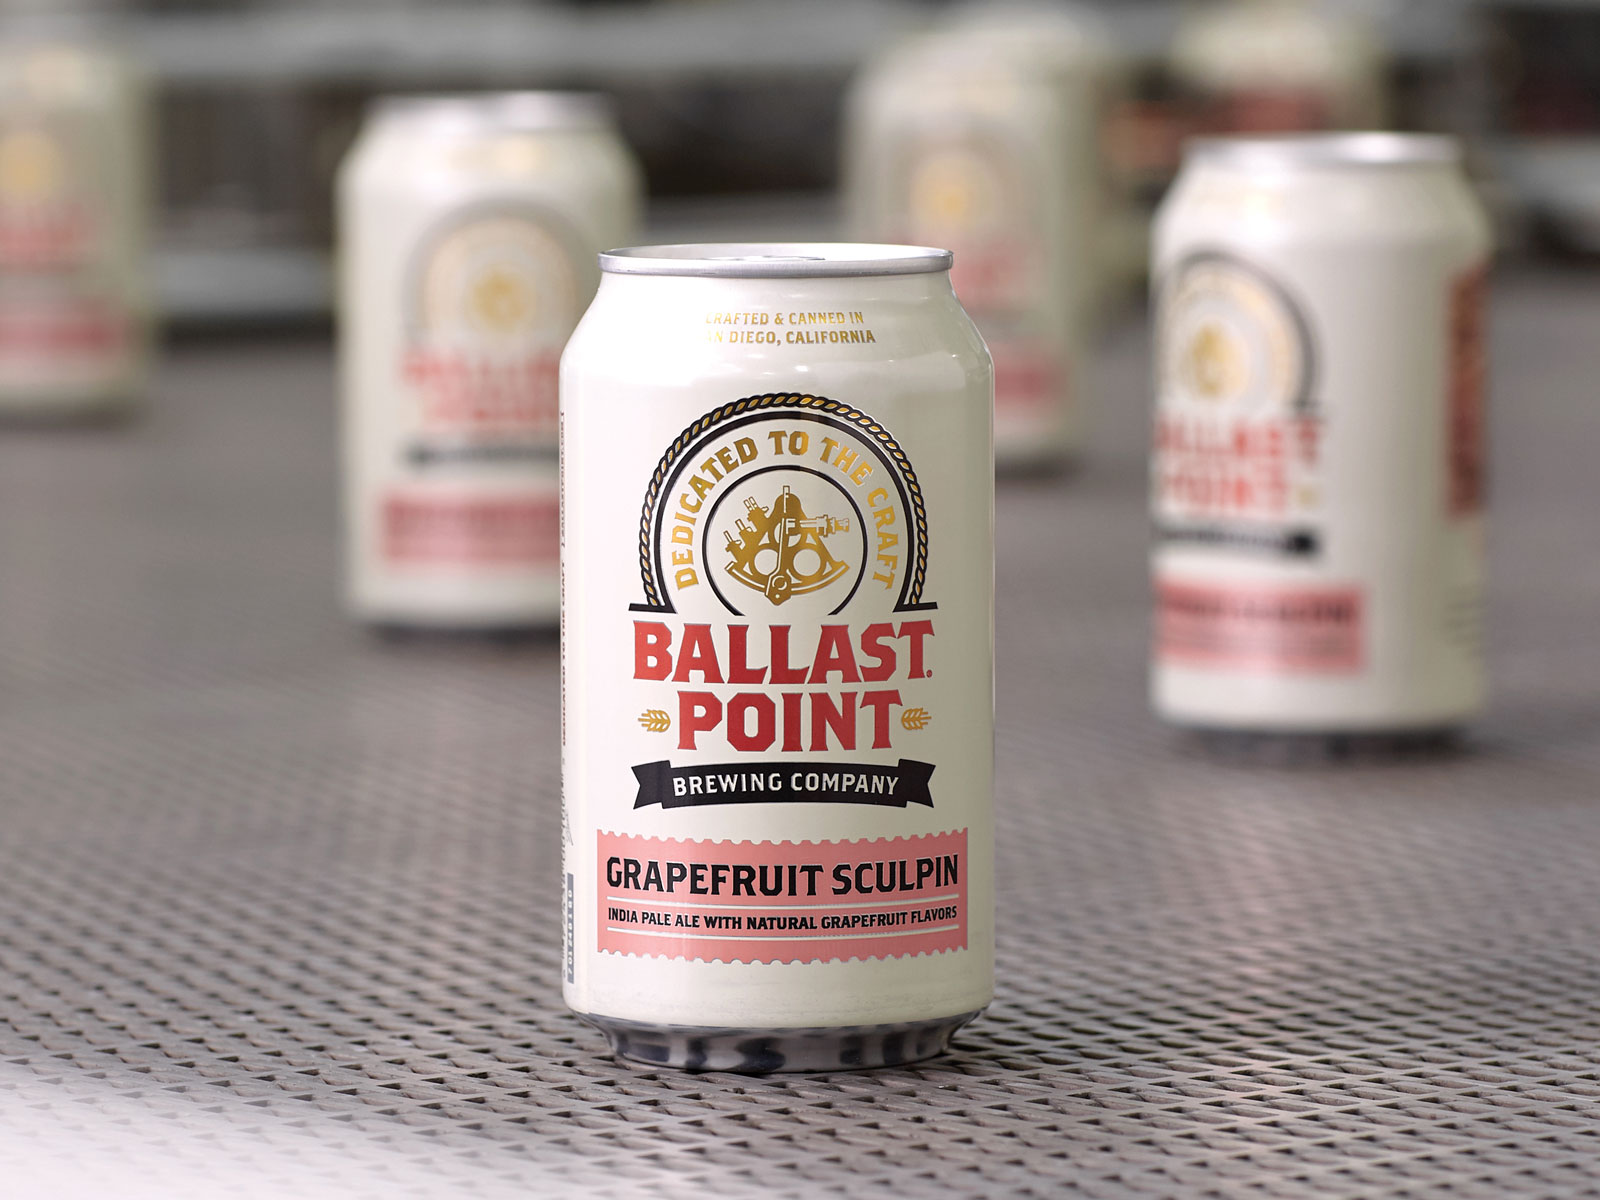 Ballast Point Brewing Grapefruit Sculpin